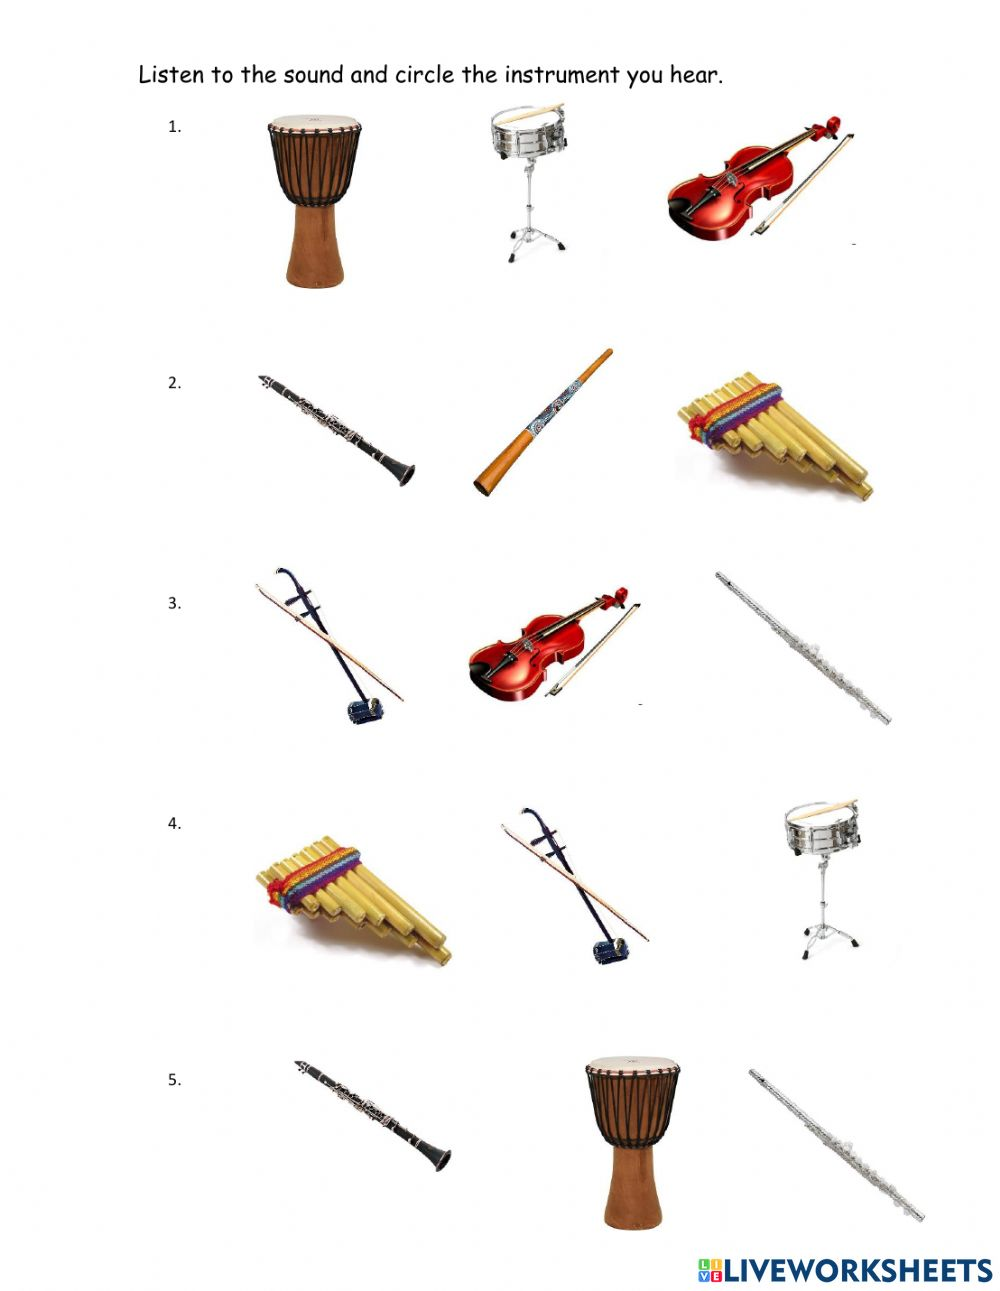 medium resolution of Instruments zsciencez exercise